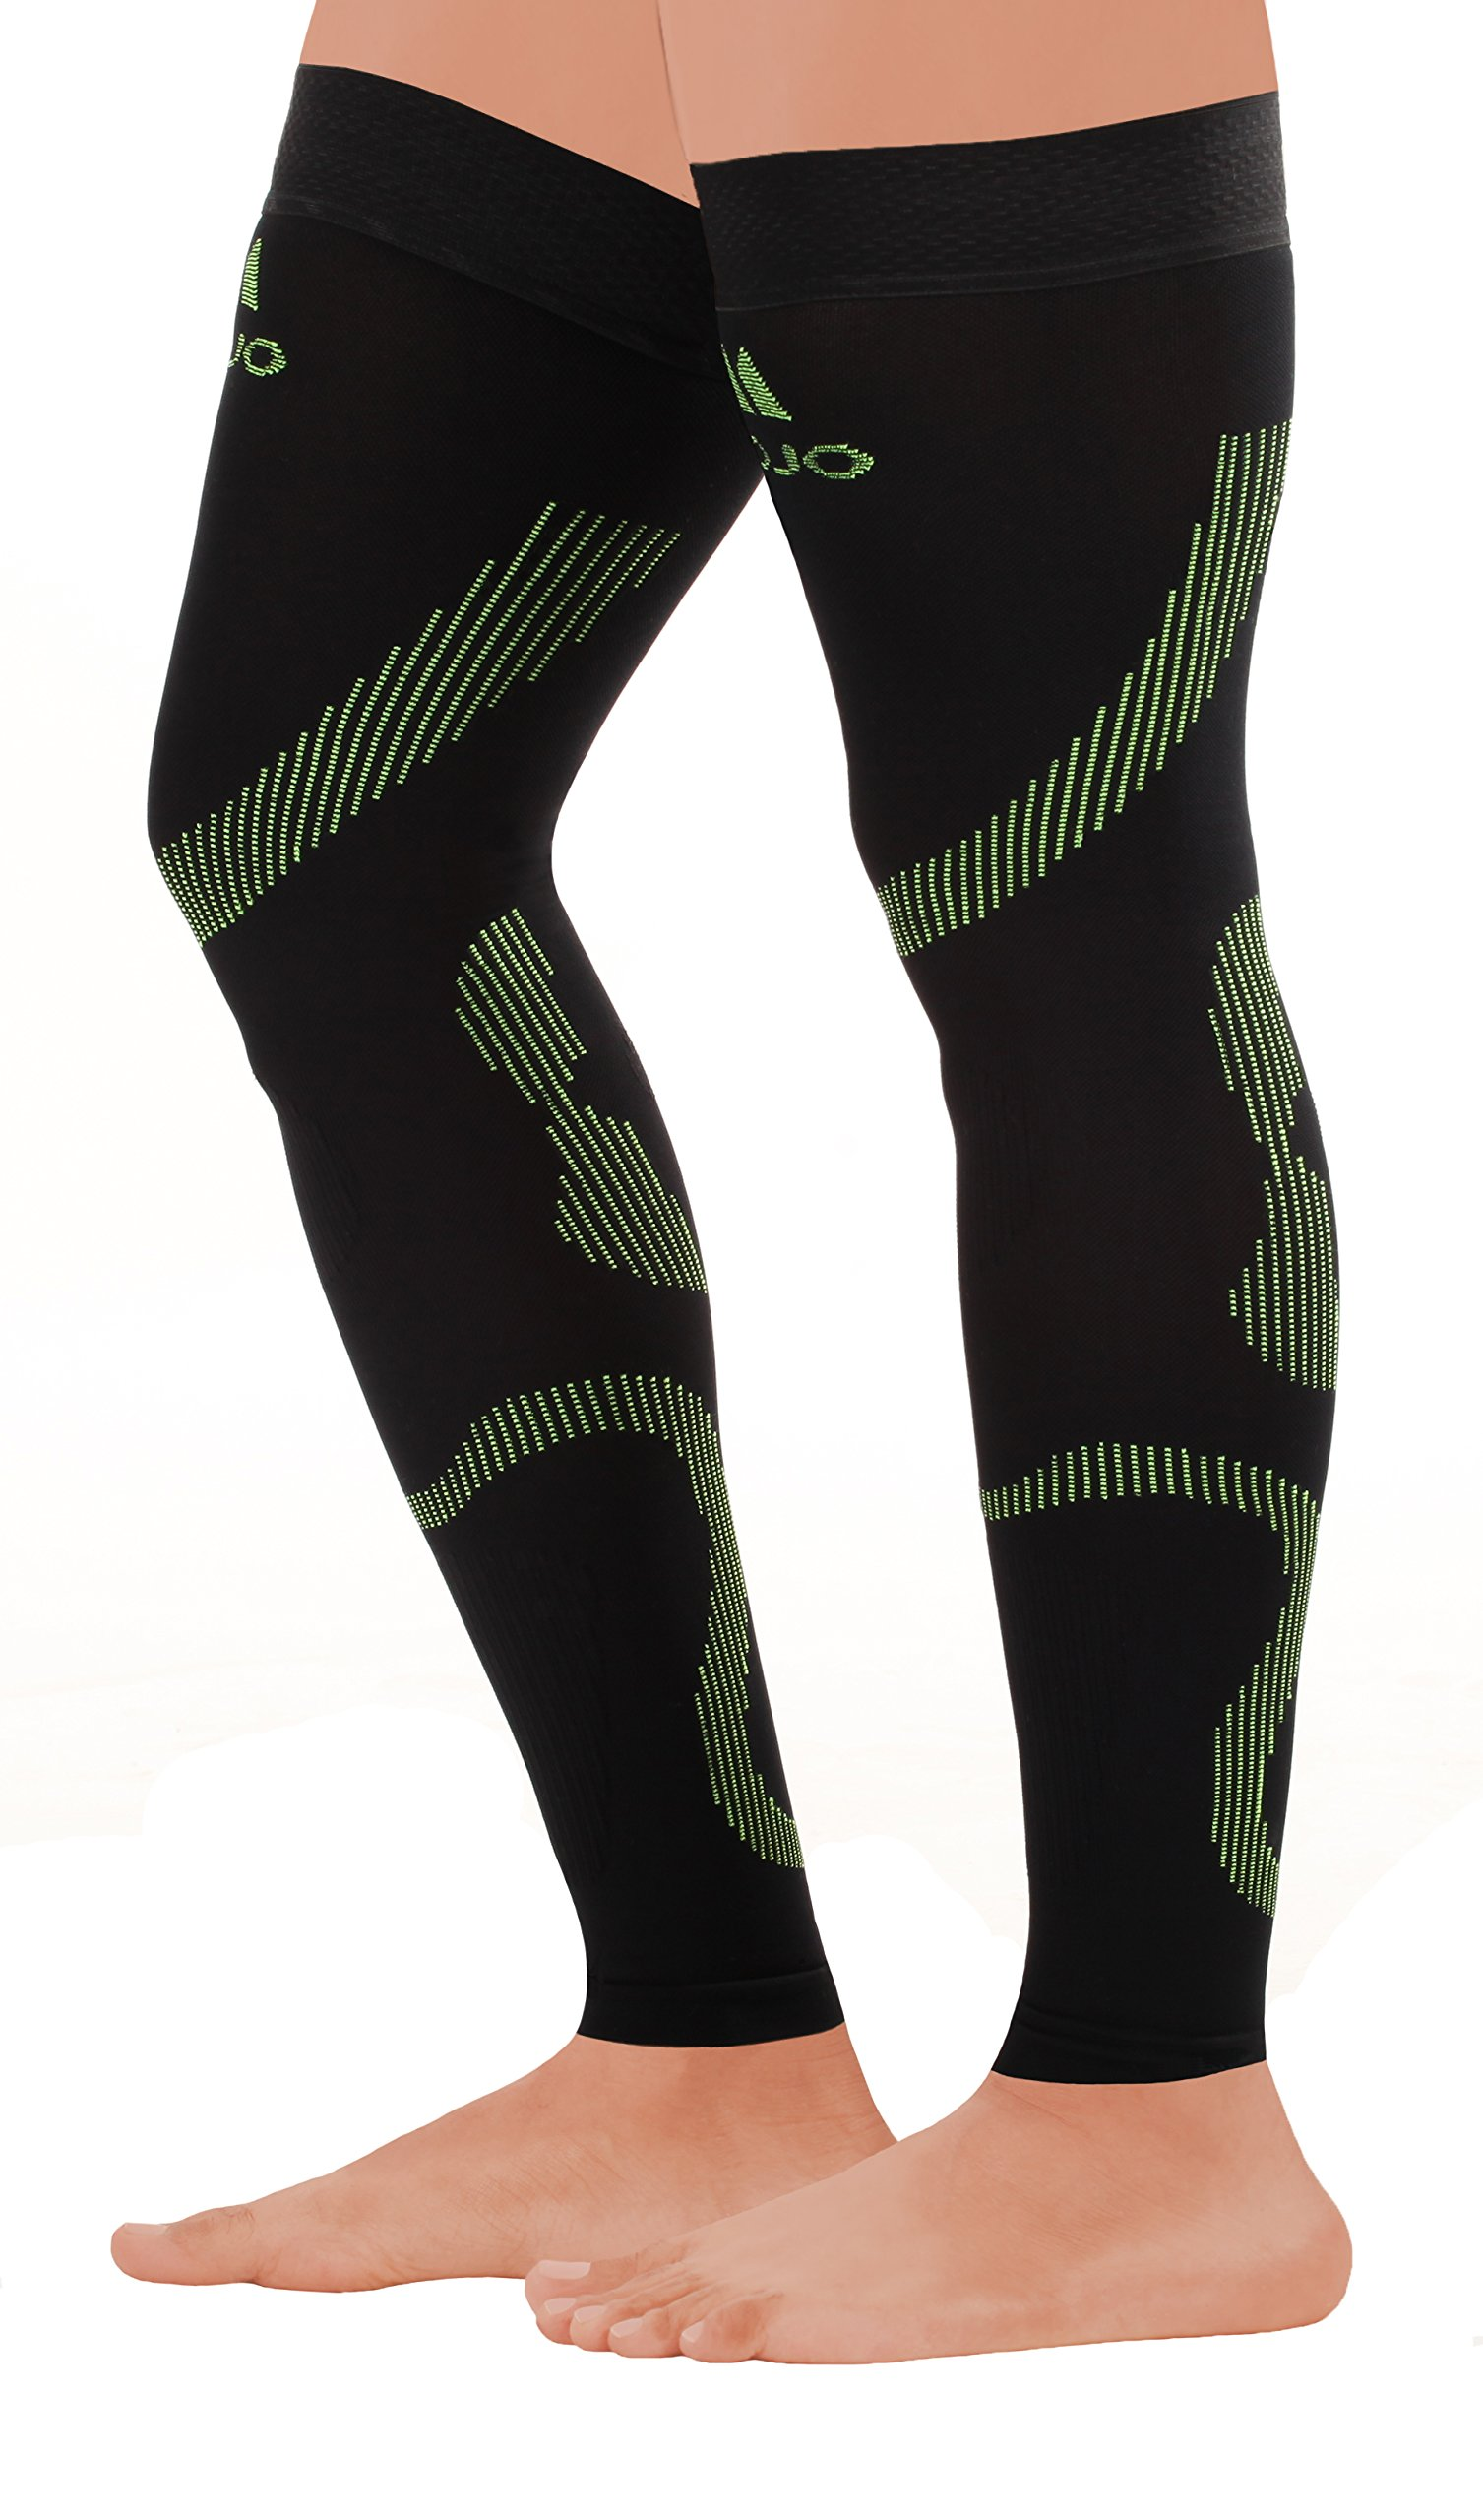 MoJo Sports Full Leg Support & Recovery Compression Thigh Sleeve - Treat Hamstring and Quad Injuries - Hamstring Compression Sleeve - Running Compression Thigh Sleeve (2XL, Black Green)